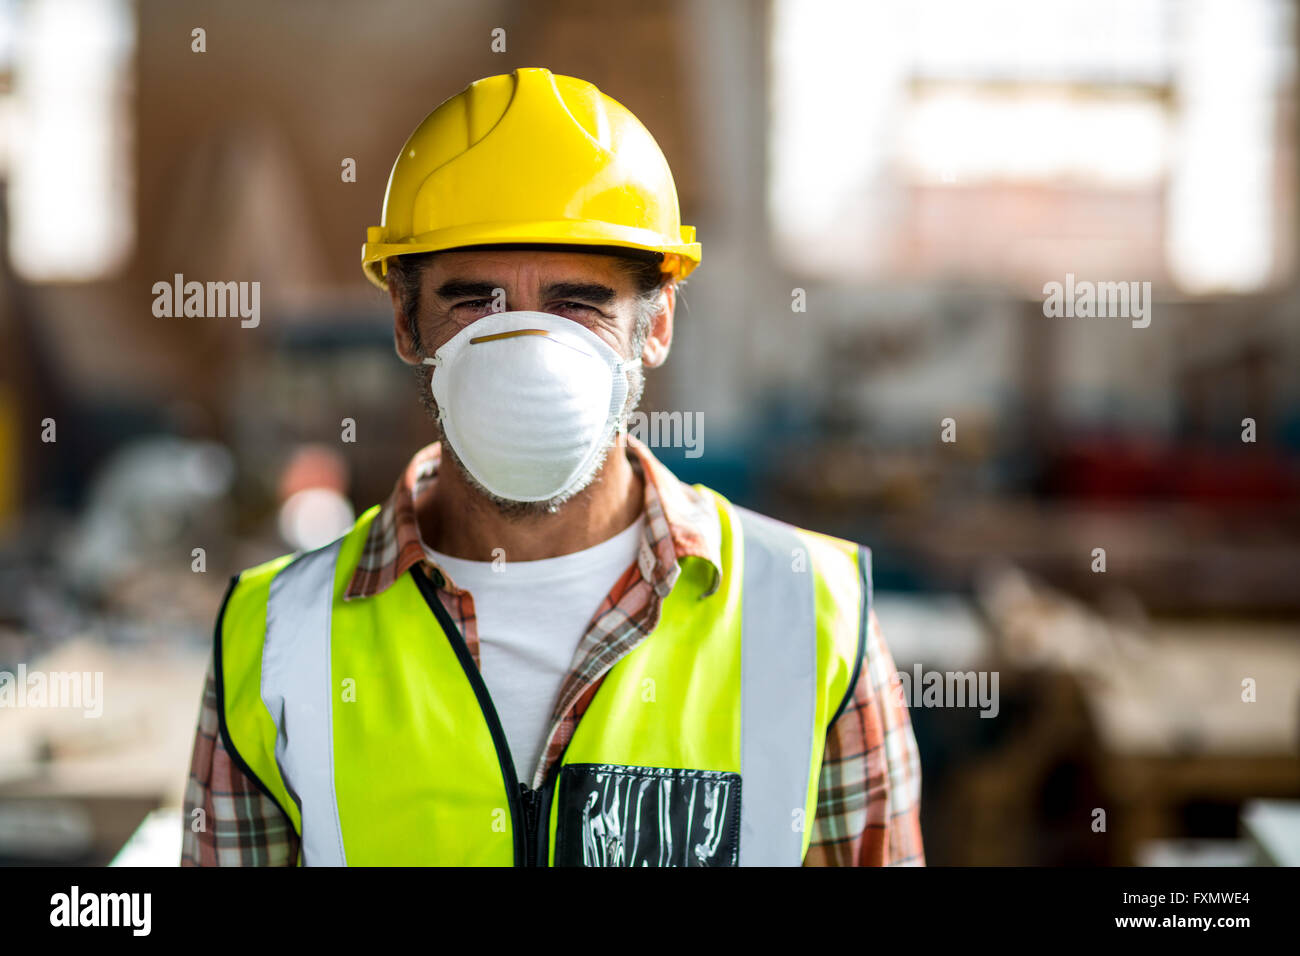 Of Dust Wearing Photo Stock Mask Portrait And Hat Carpenter Hard